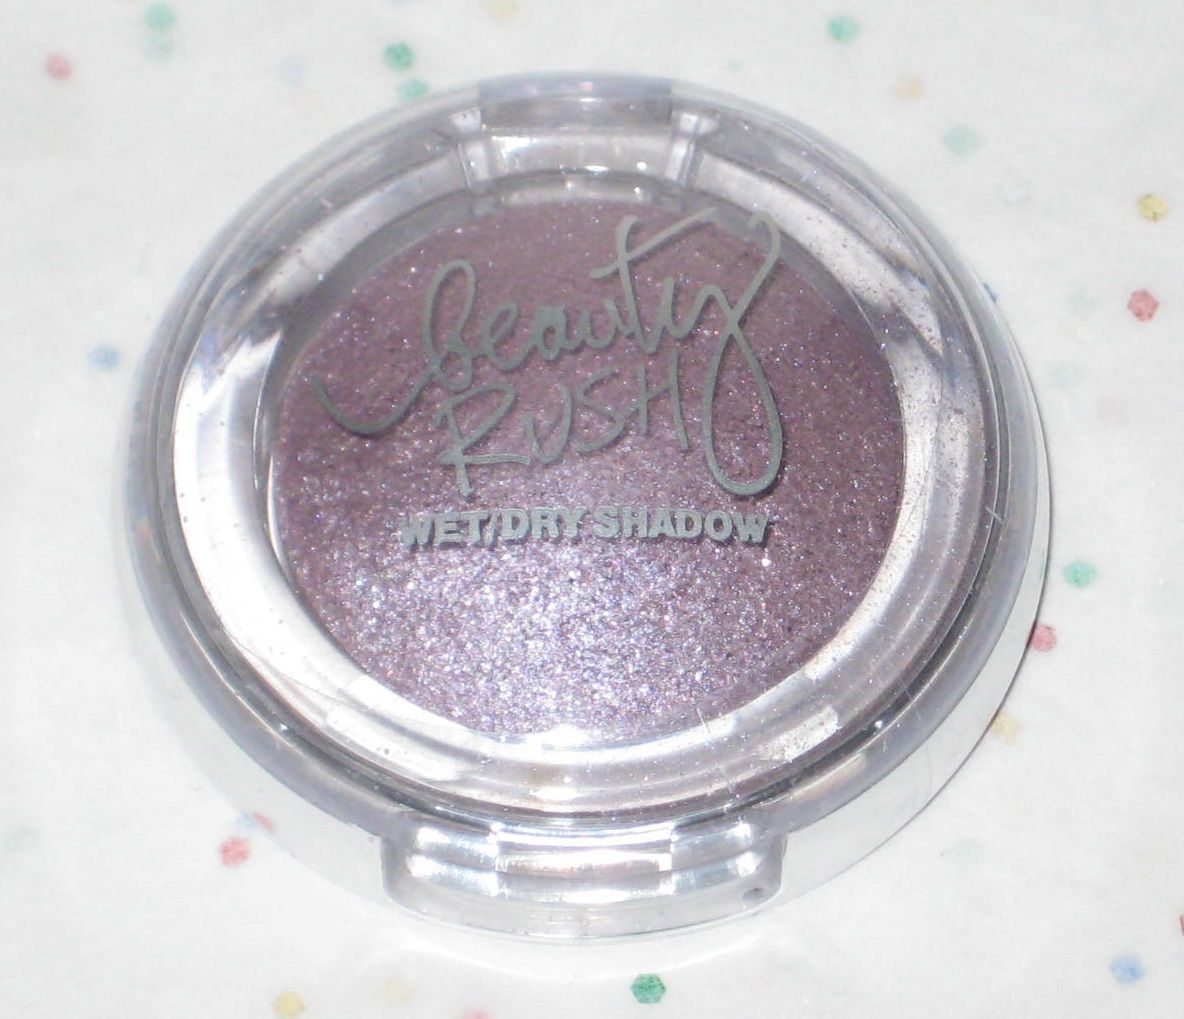 Primary image for Victoria's Secret Beauty Rush Wet/Dry Shadow in Violet Femme